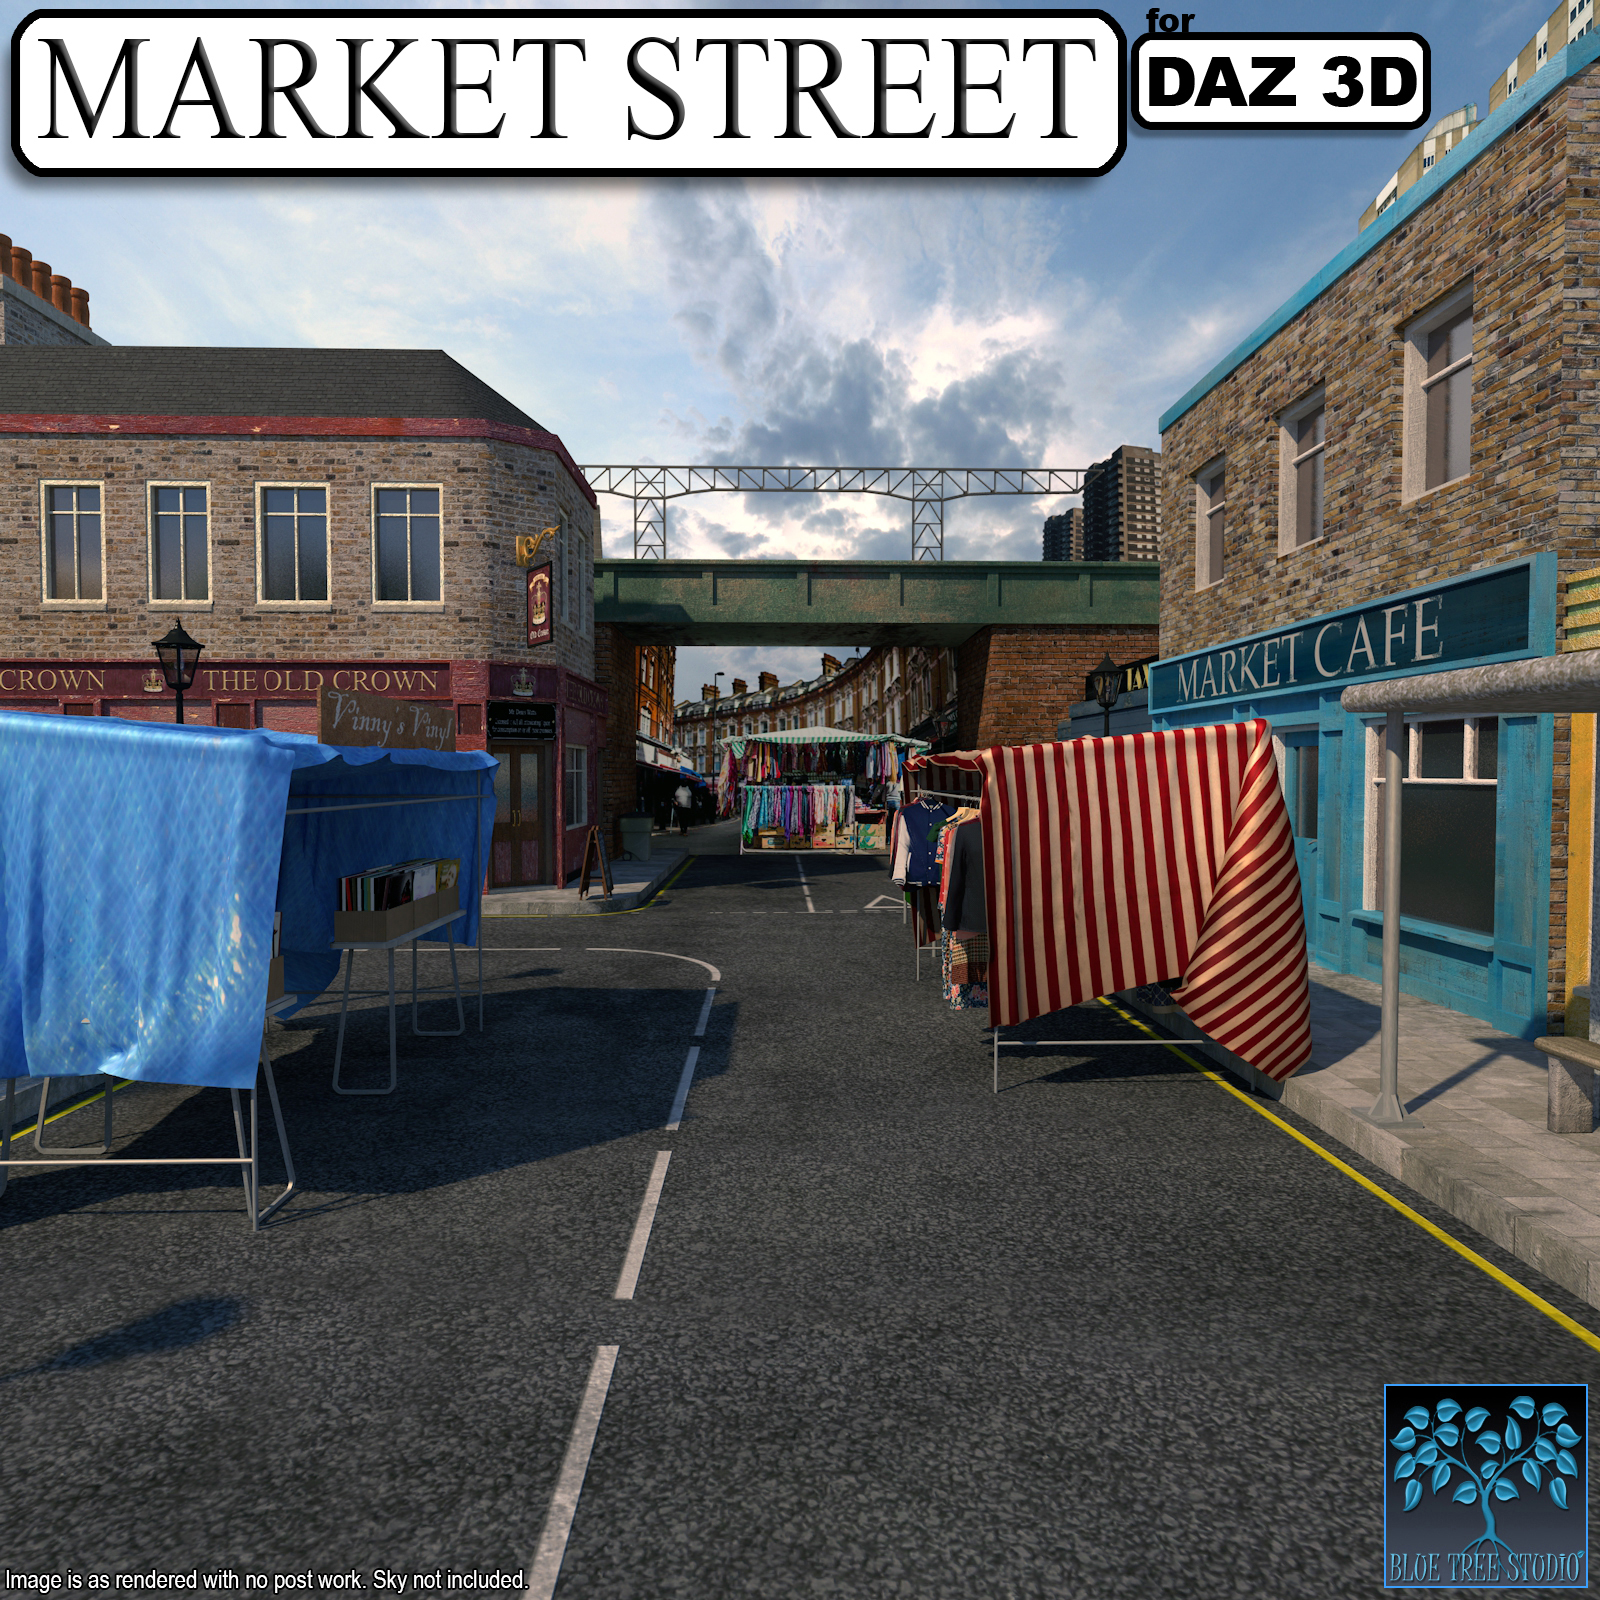 Market Street for DAZ